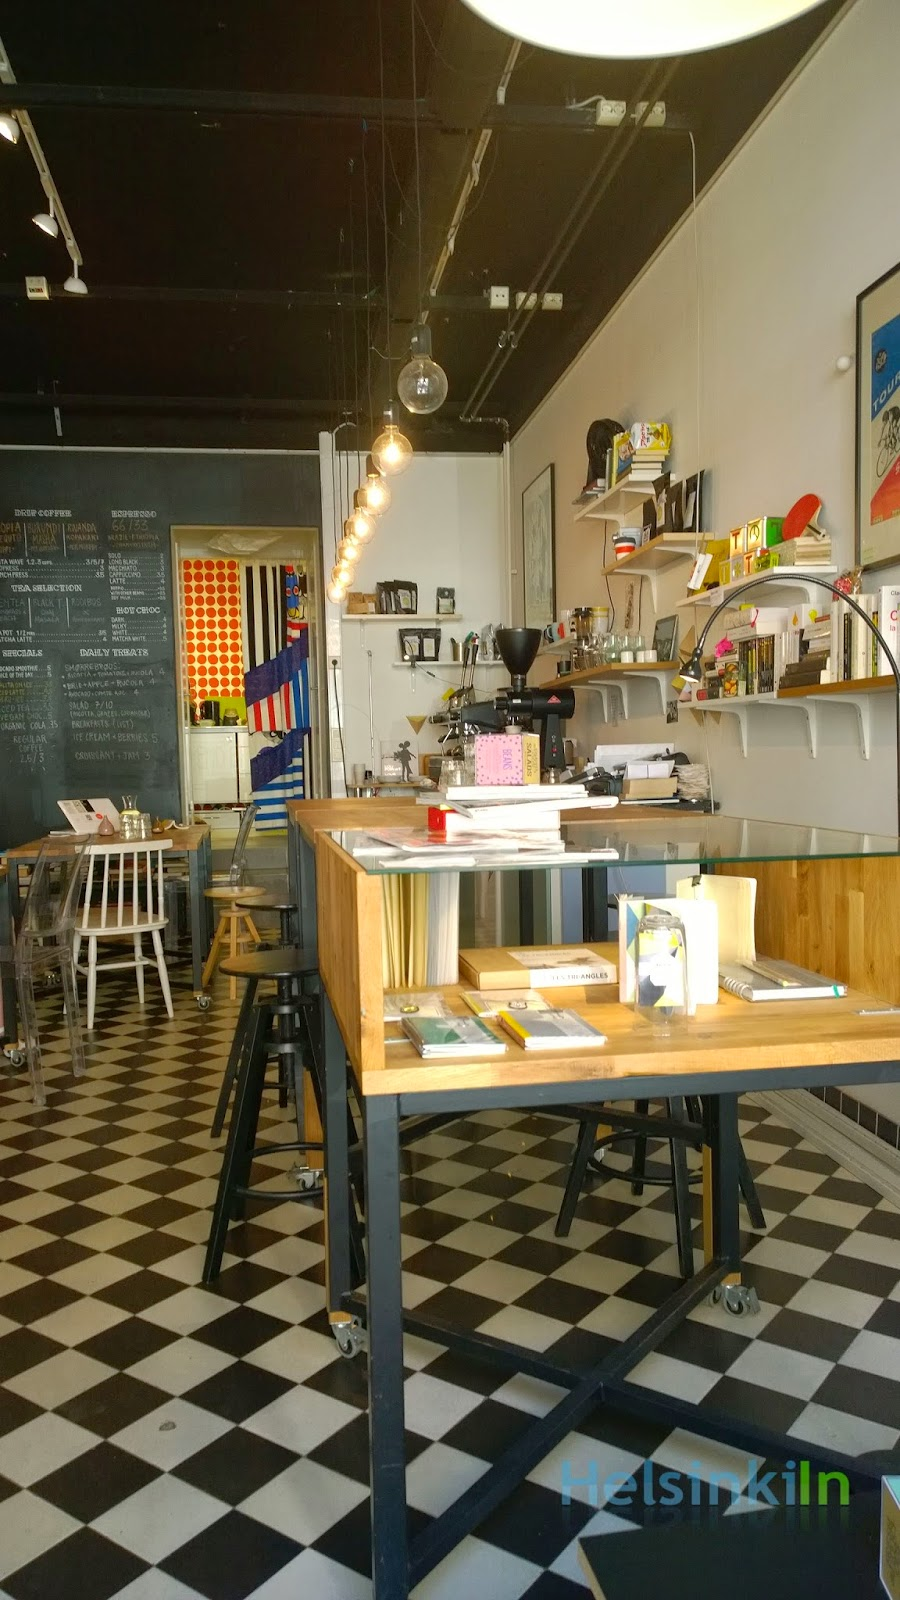 The Exhibitionists cafe